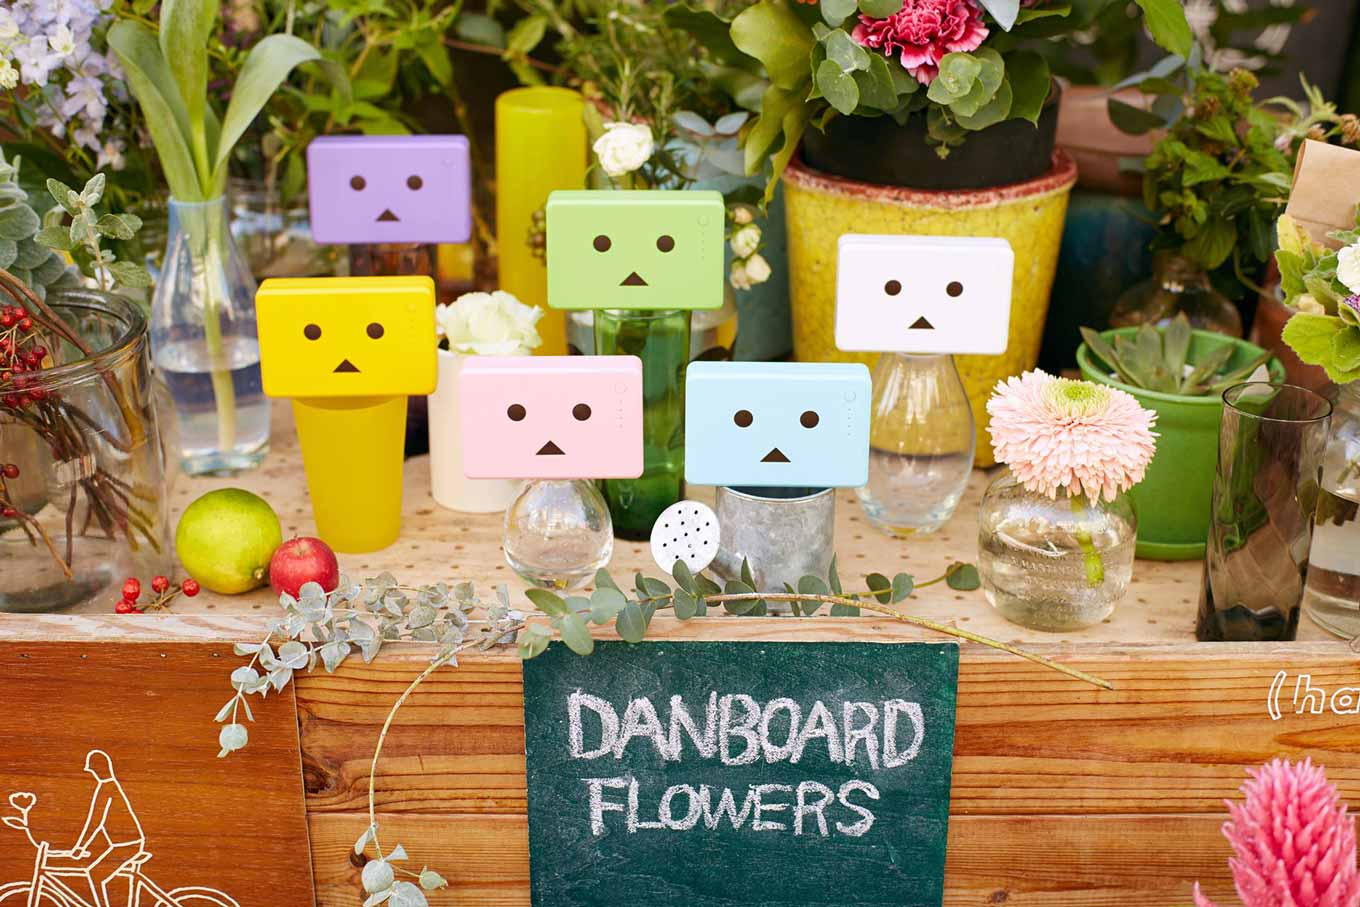 Amazon、「cheero Power Plus 10050mAh DANBOARD version – FLOWERS -」を51%オフで販売中(5月22日タイムセール)